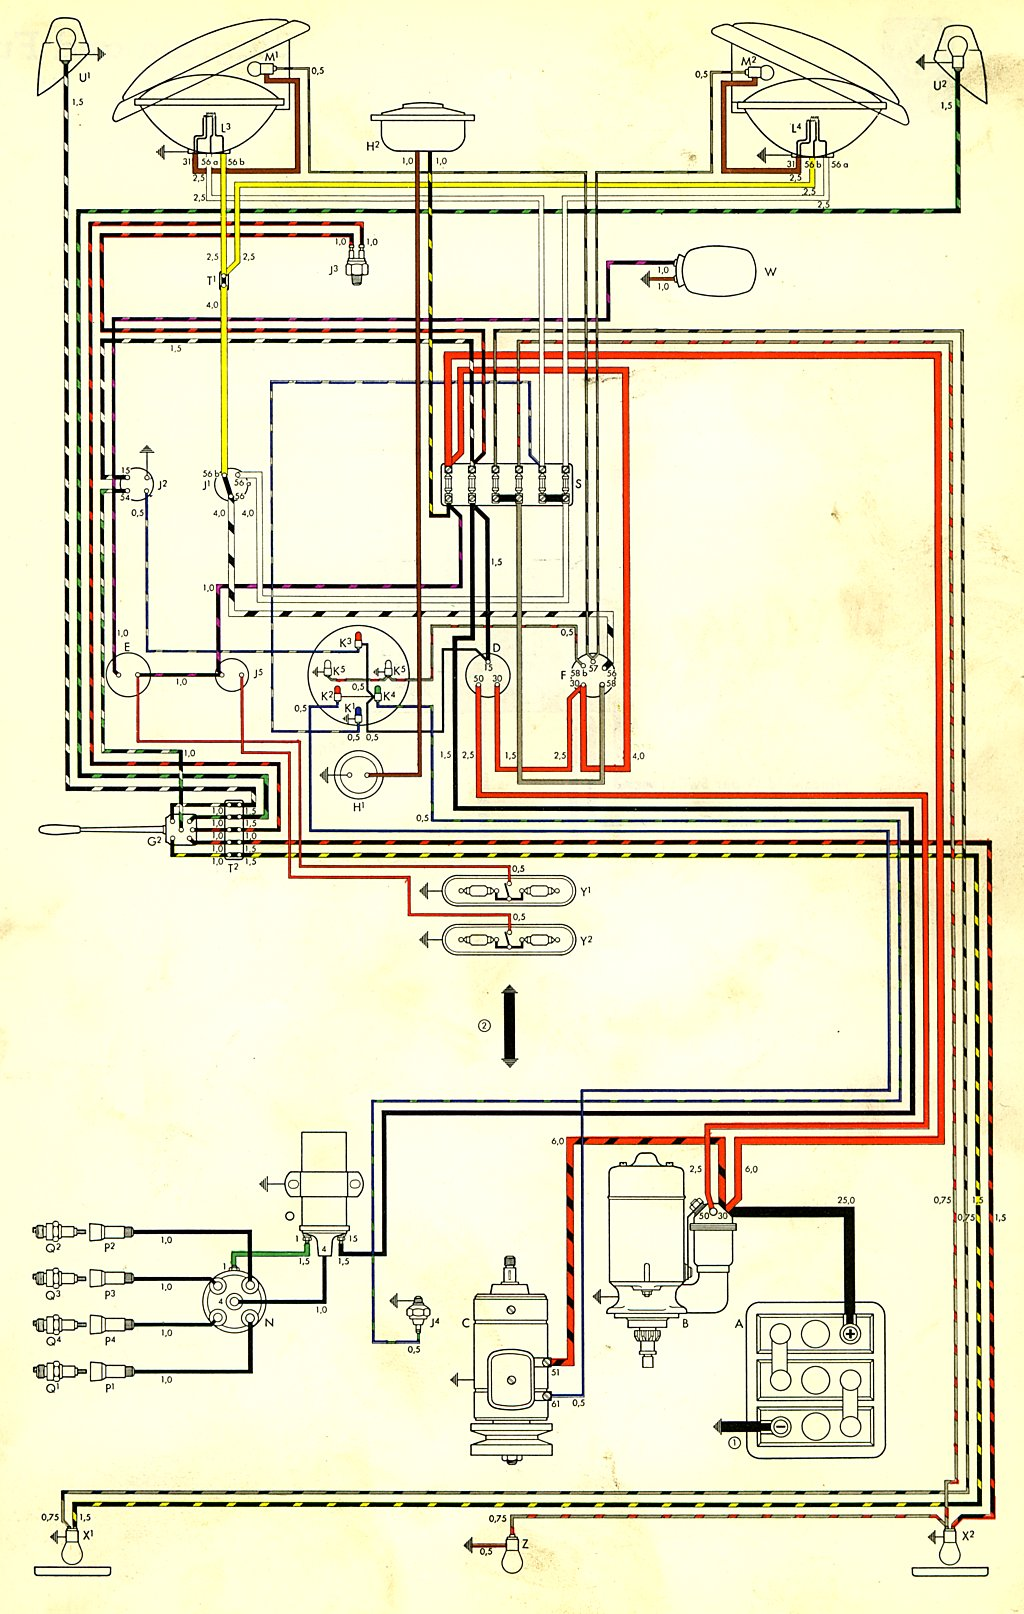 thesamba com type 2 wiring diagrams rh thesamba com 1974 vw bus wiring diagram 1966 vw bus wiring diagram